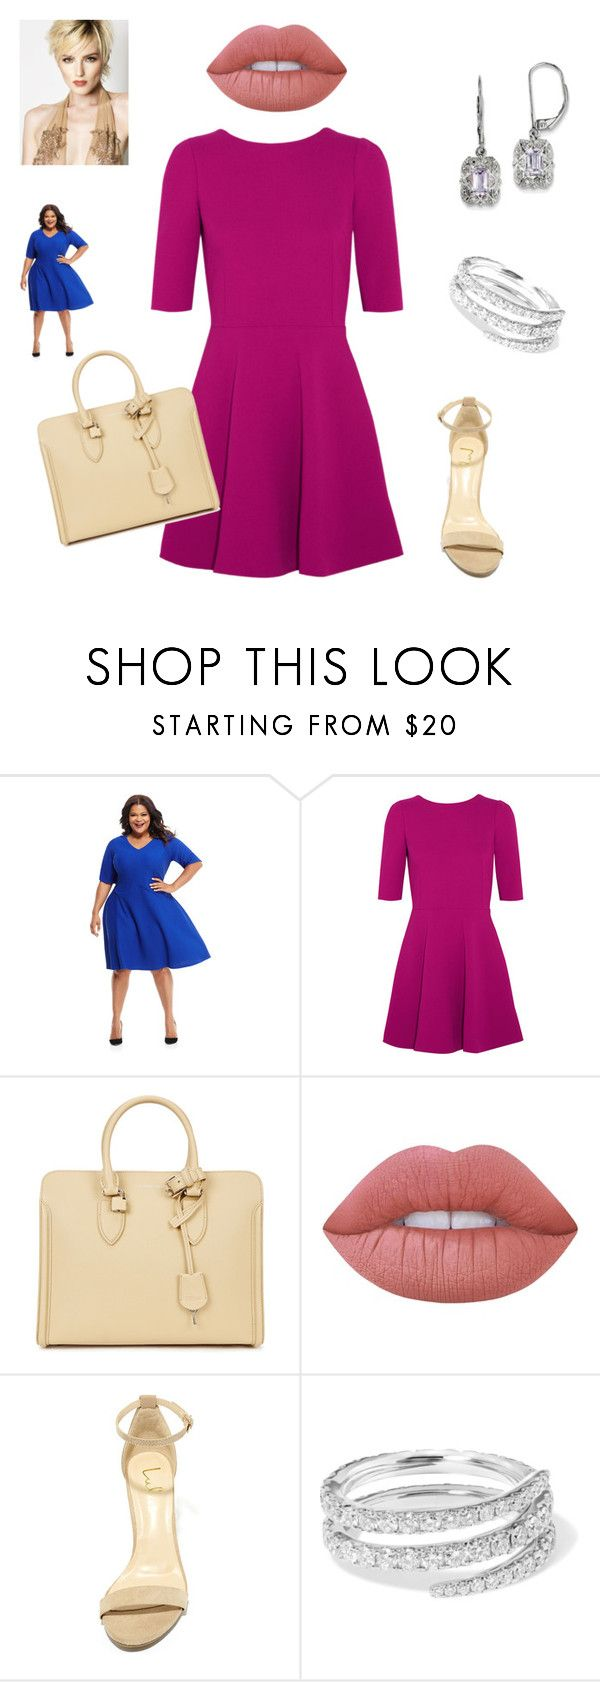 """""""Mujer 40 años Civil Dia."""" by jesica-cropanese on Polyvore featuring moda, Maggy London, Dolce&Gabbana, Alexander McQueen, Lime Crime, LULUS, Anita Ko, BillyTheTree y plus size dresses"""